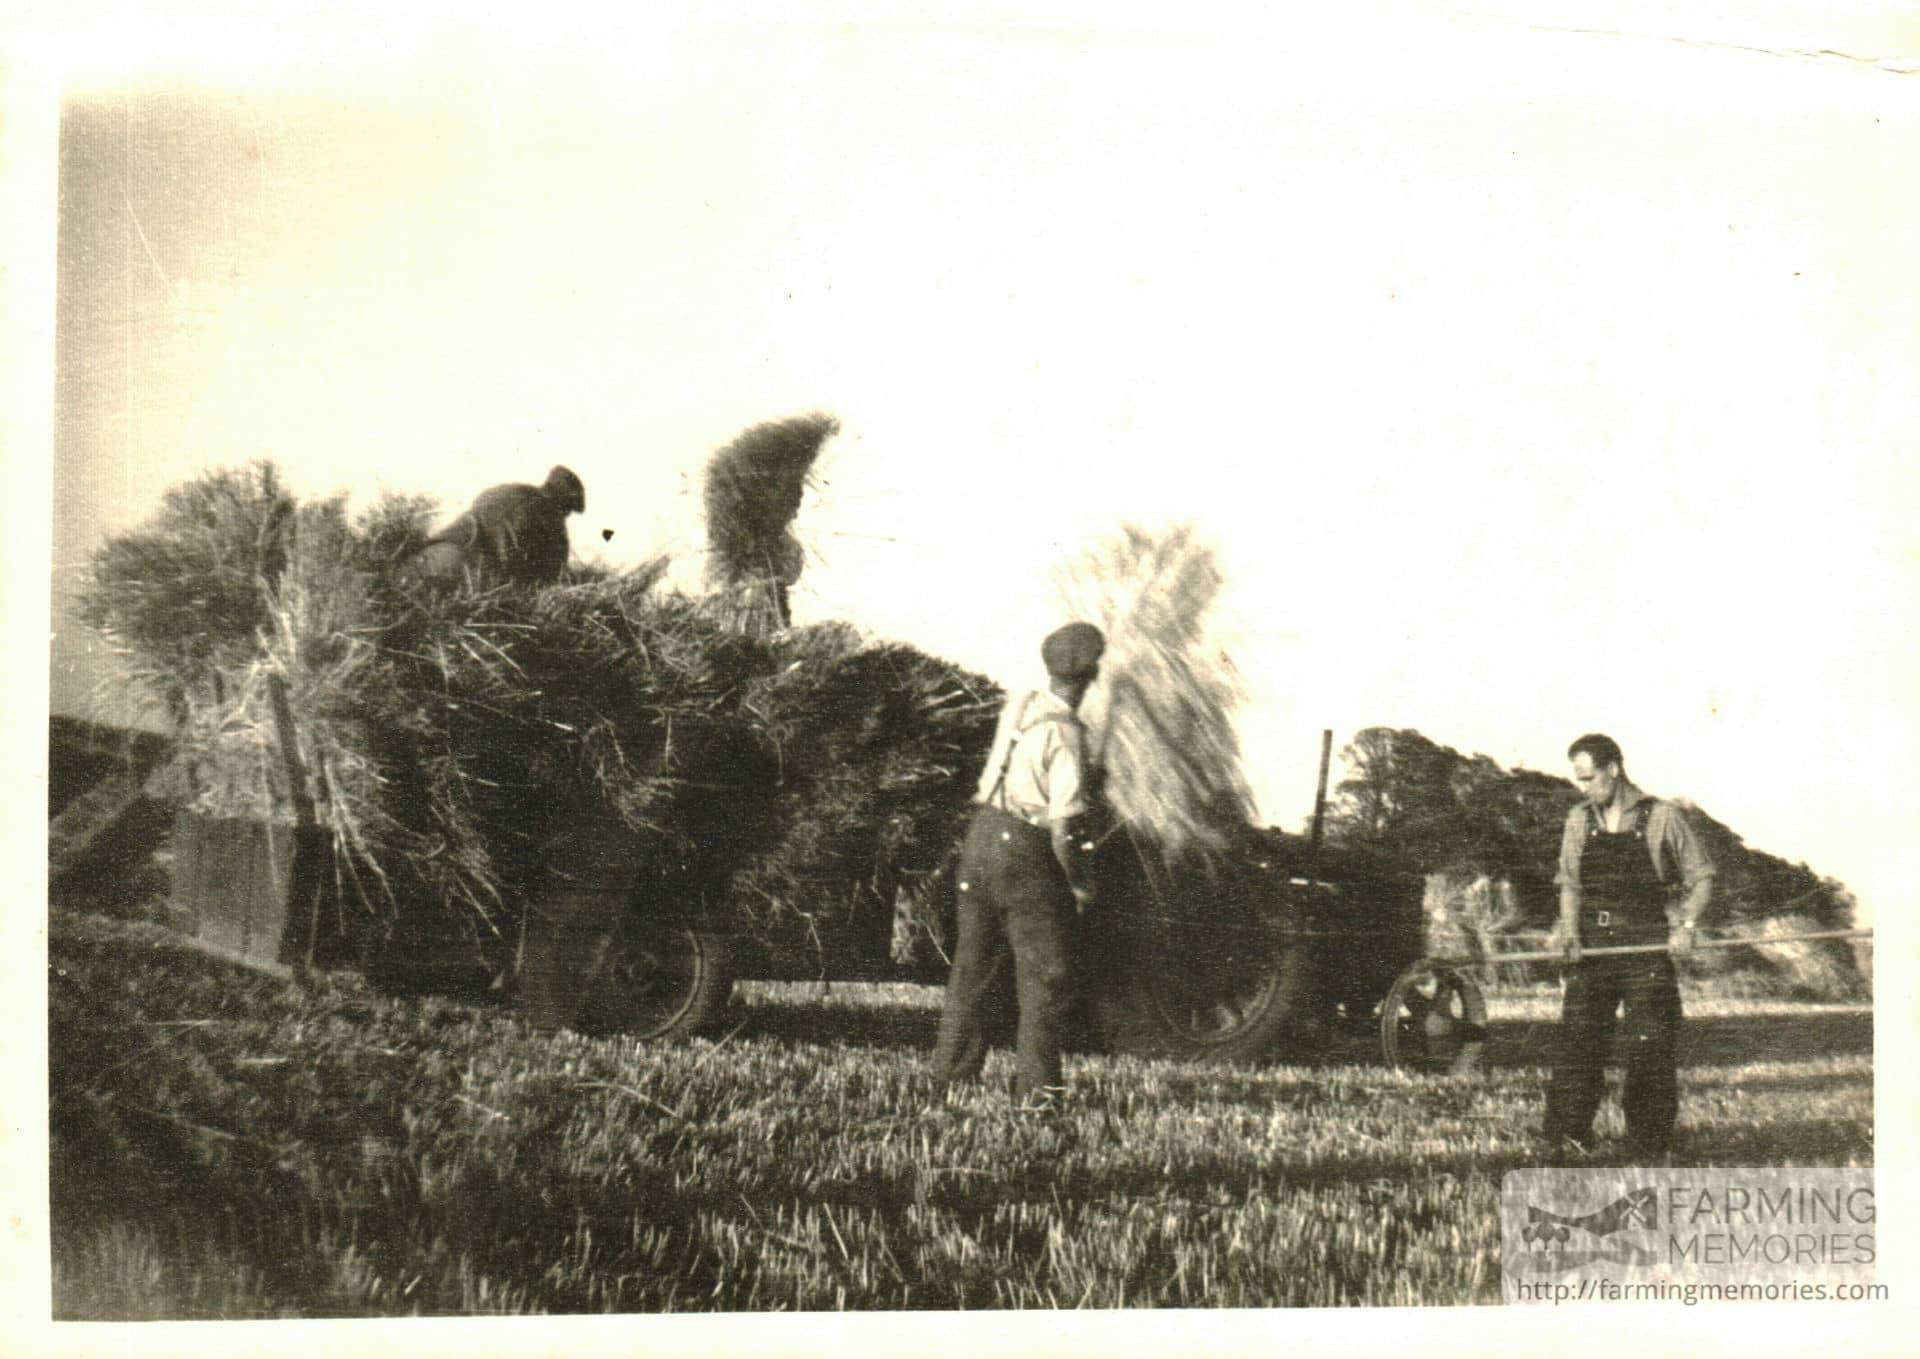 Andrew Groves on haymaking